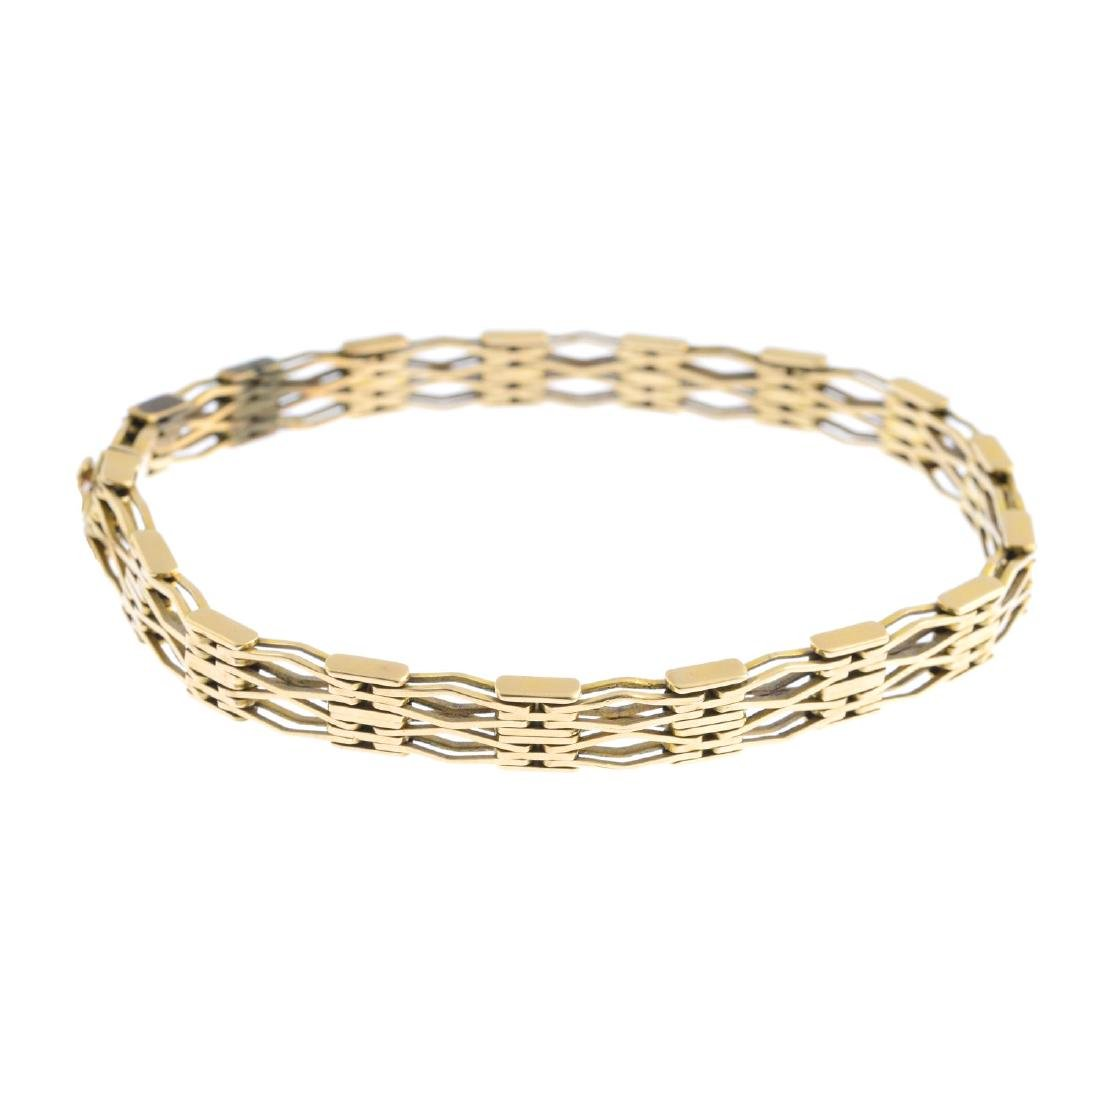 An early 20th century 15ct gold bracelet. Designed as a